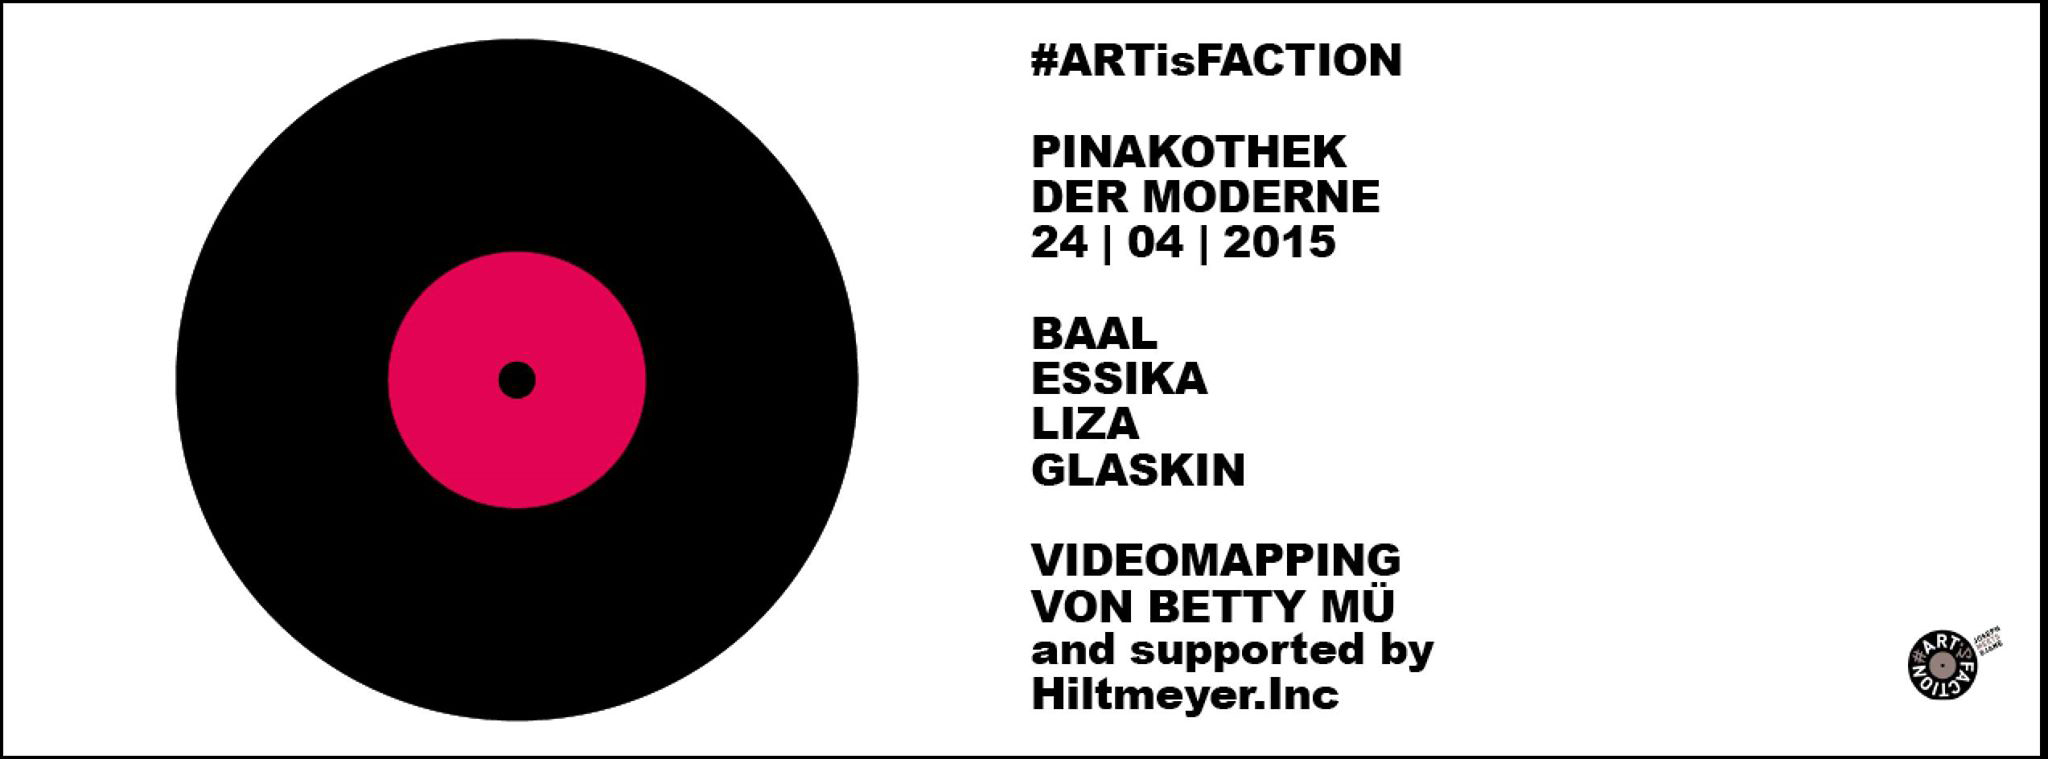 Artisfaction